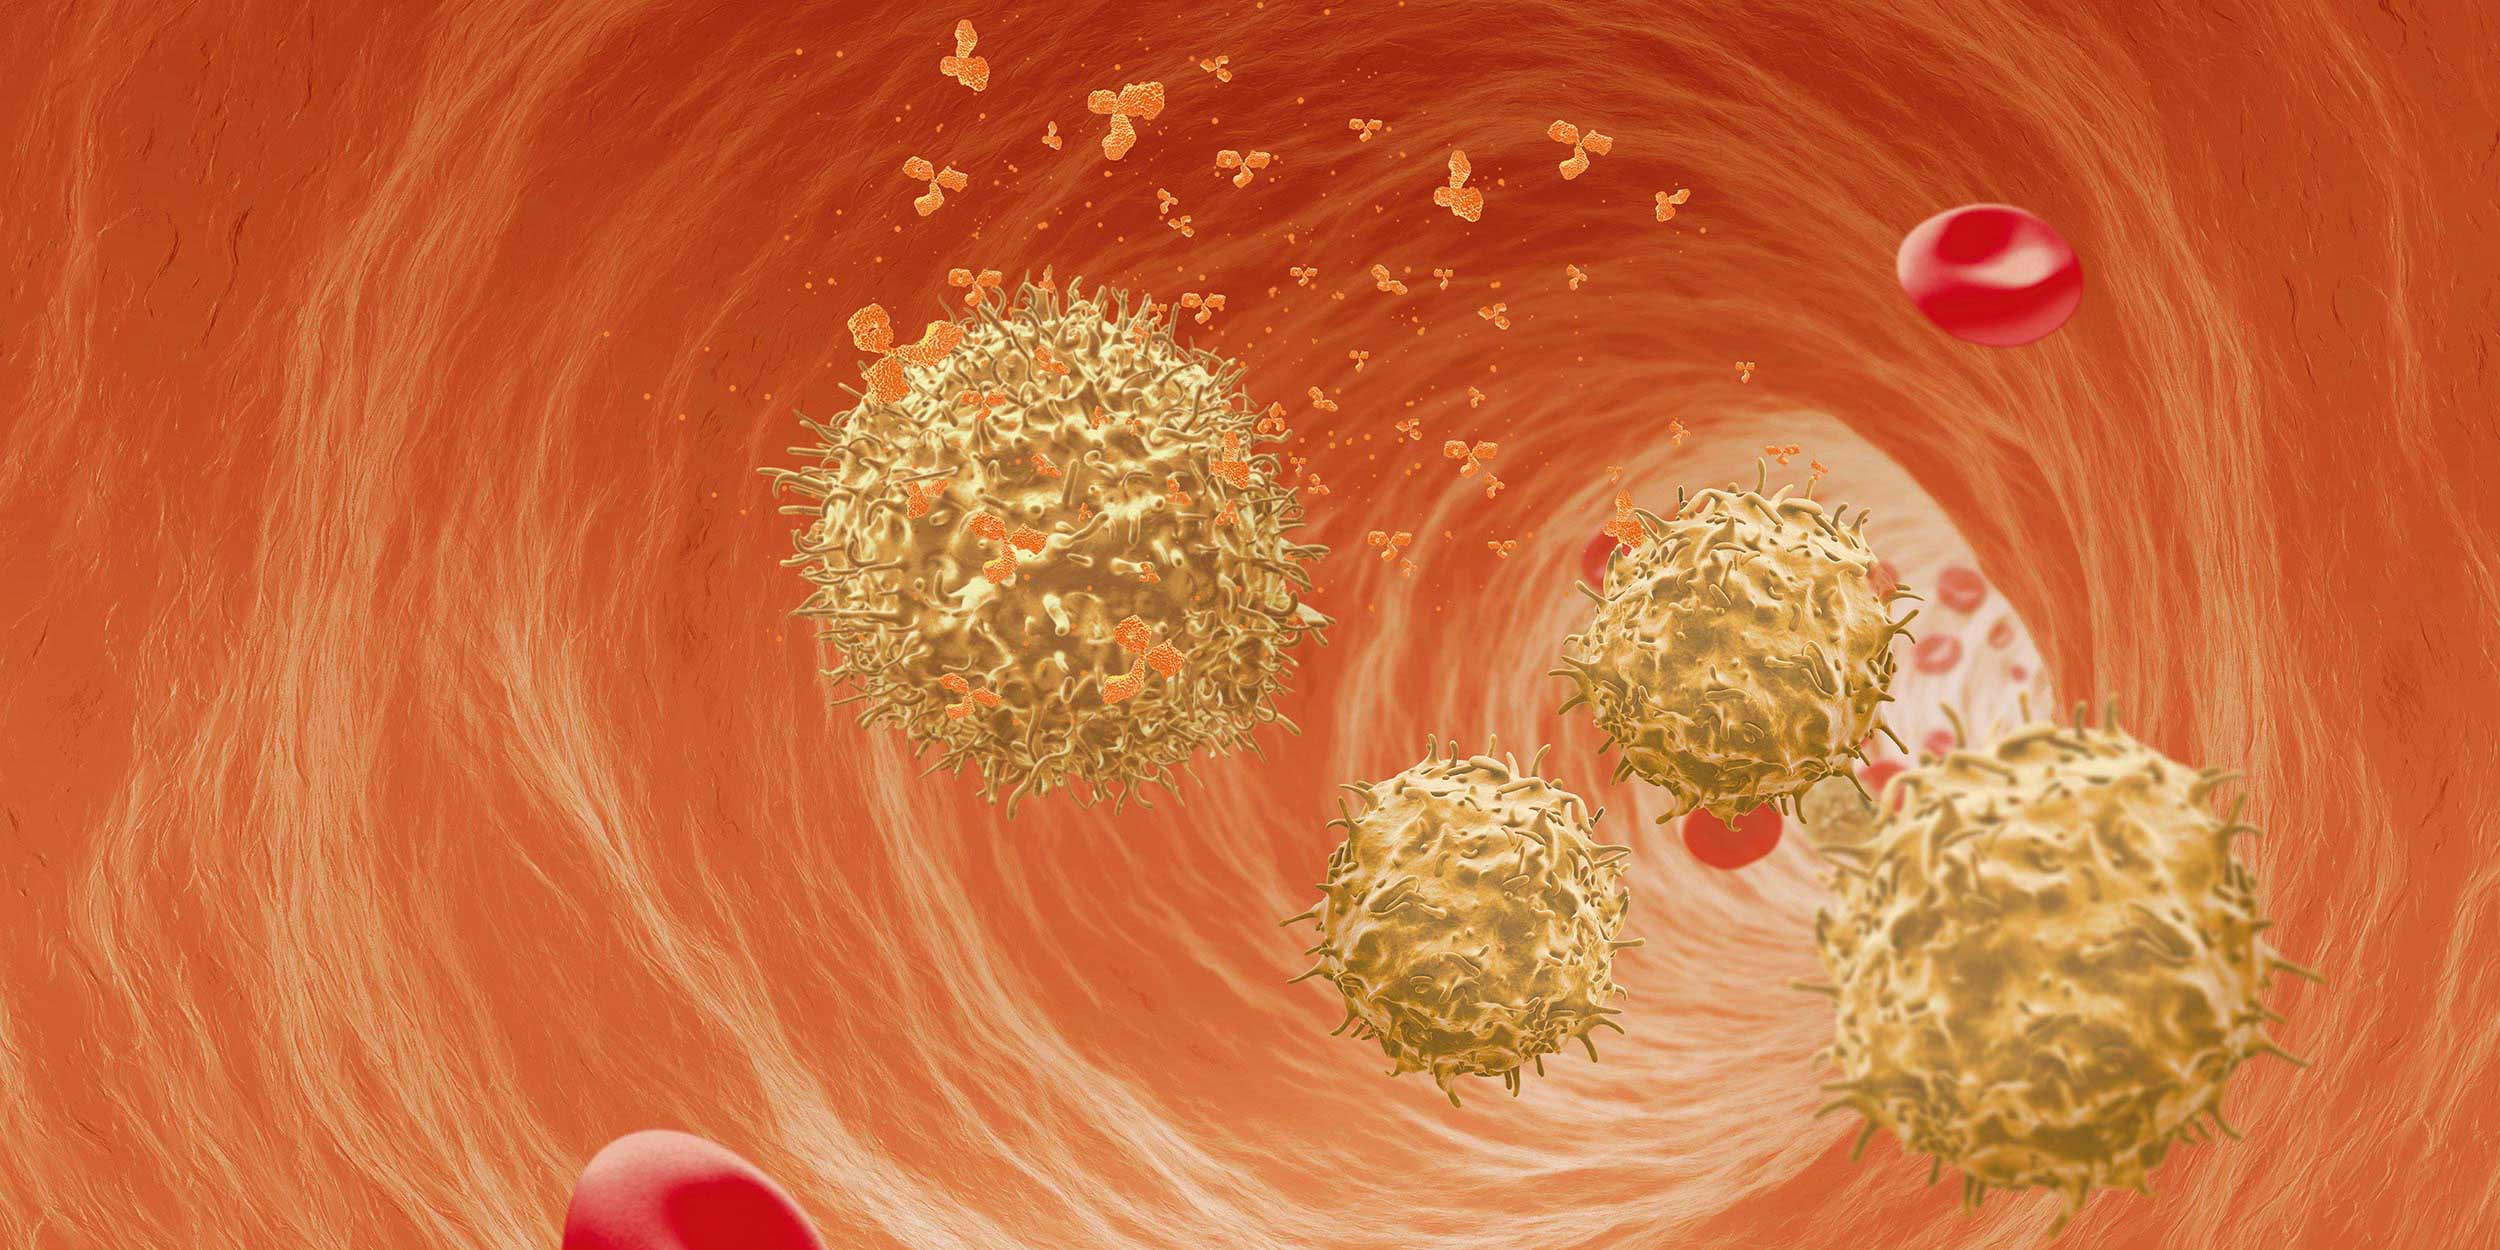 All you need for immuno-oncology B cell research